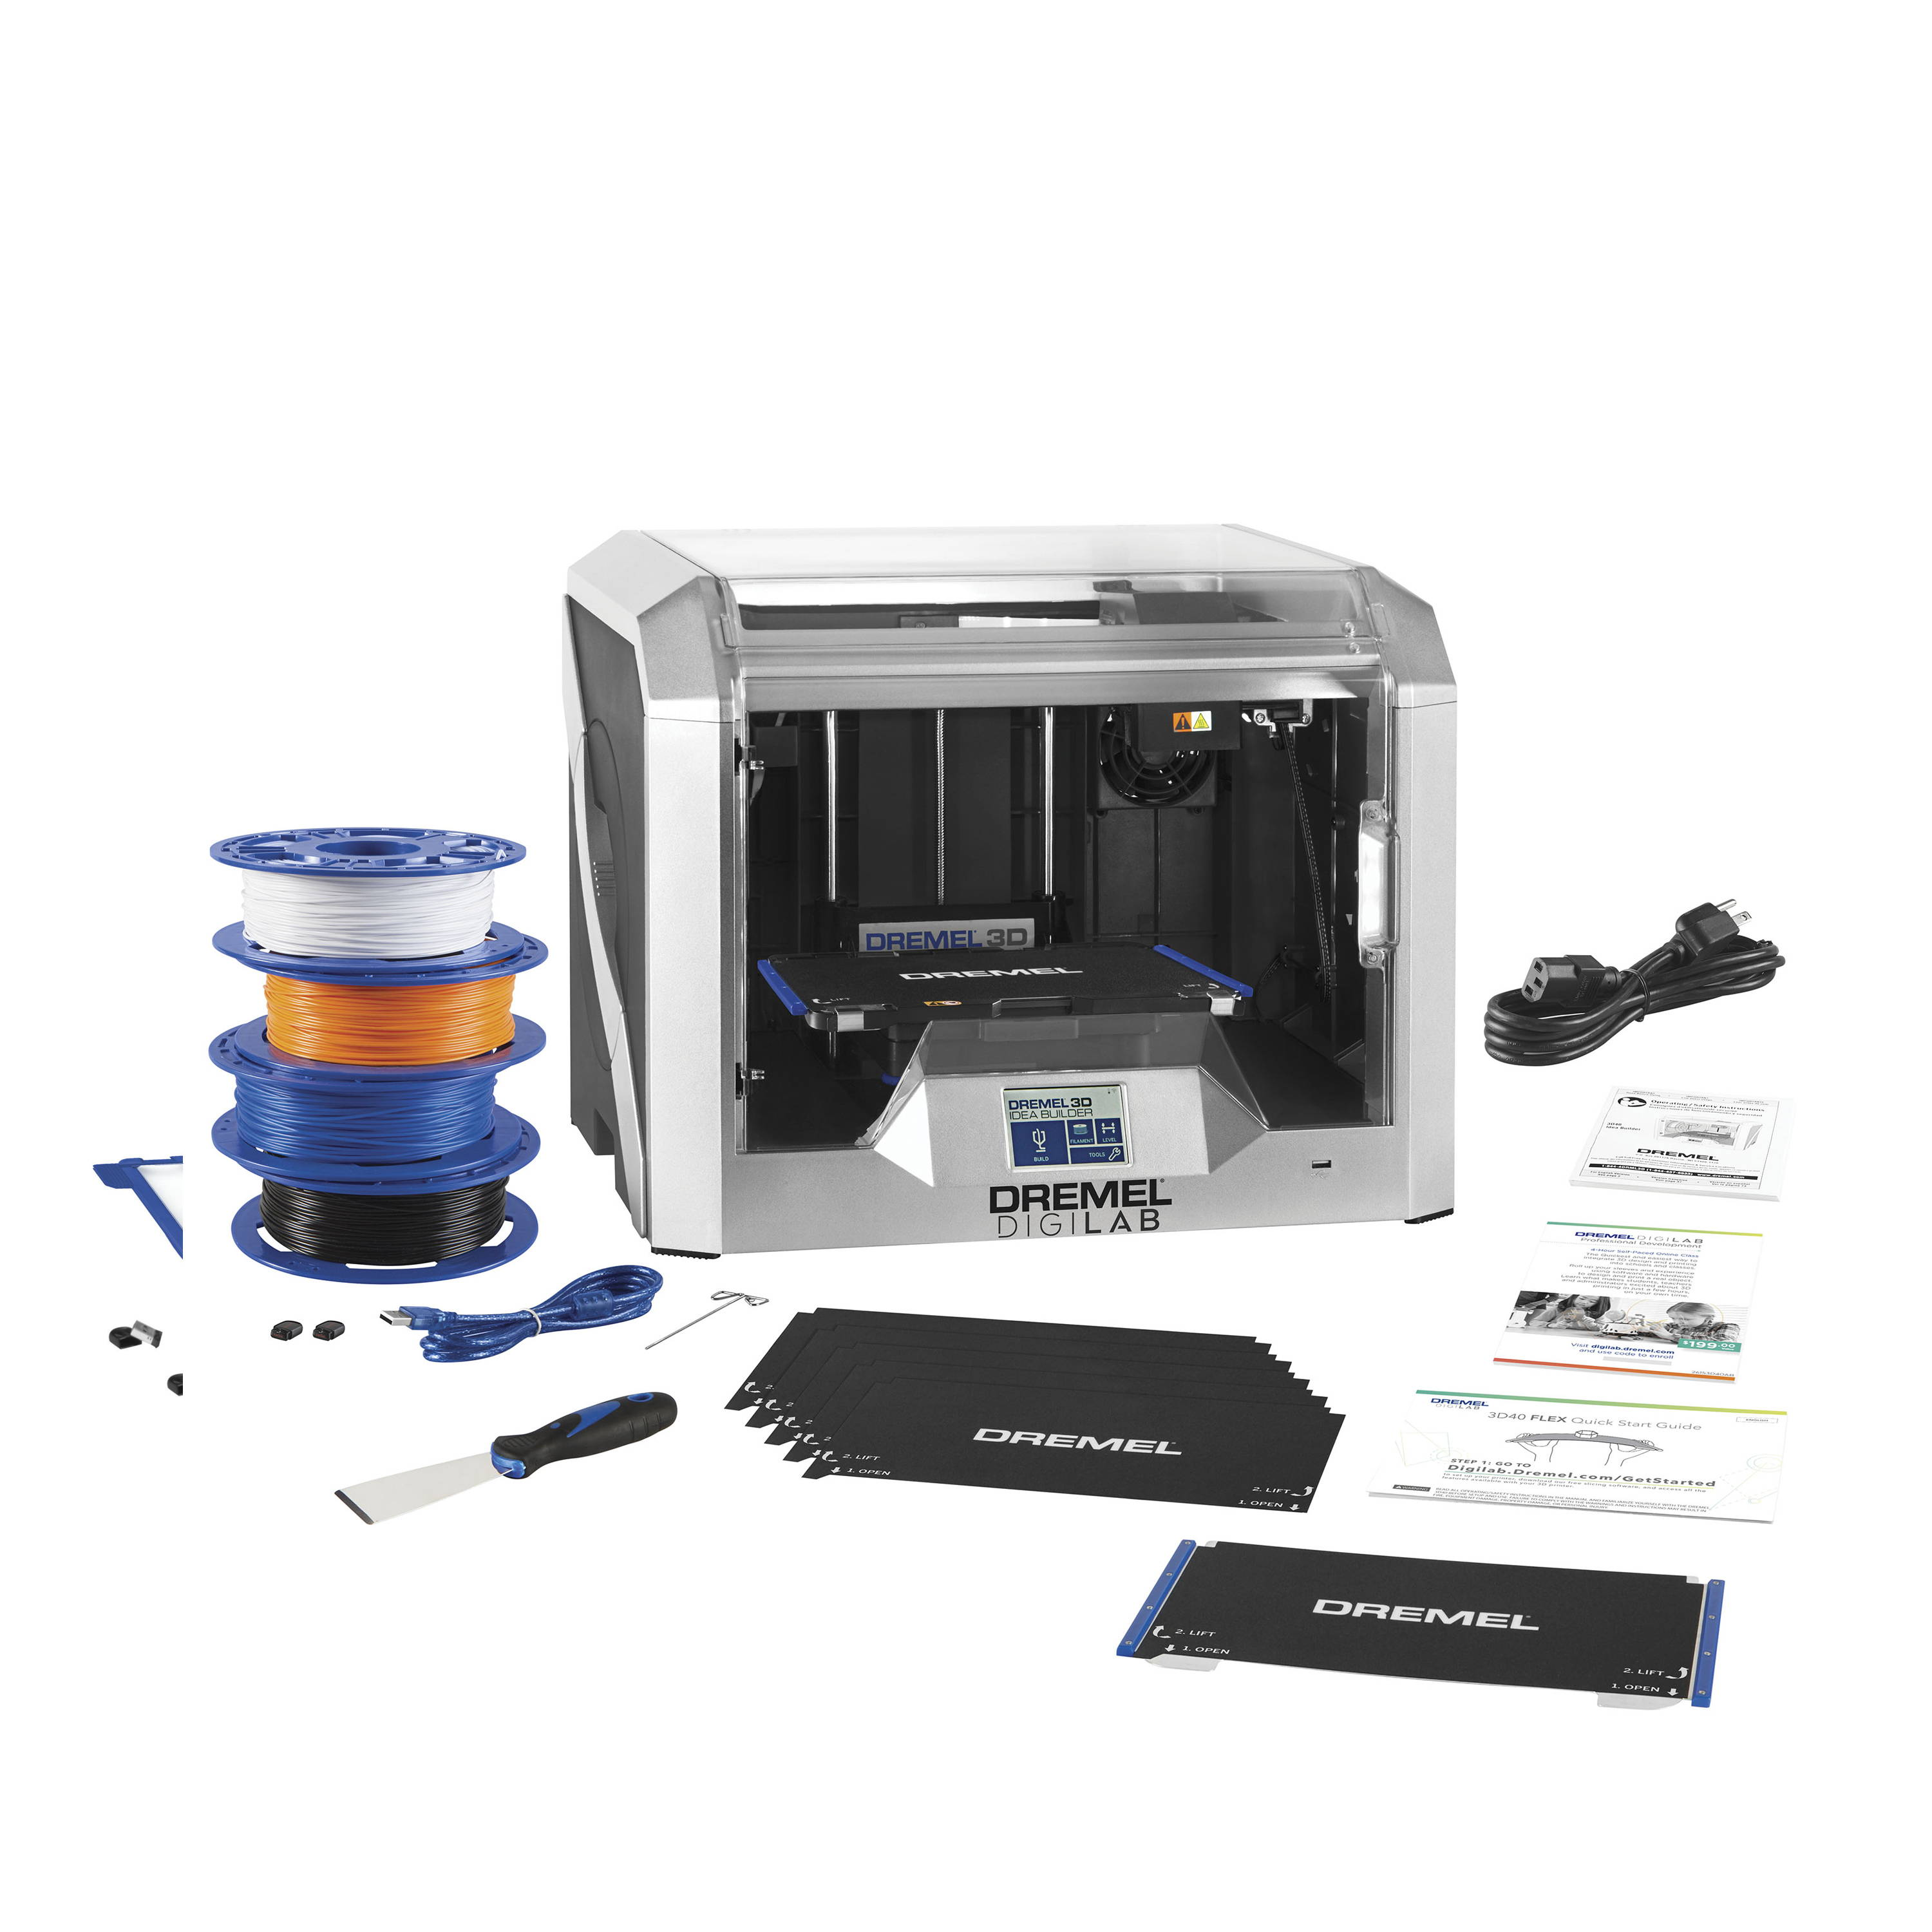 Image of 3D40-FLX-EDU 3D printer bundle with all included contents